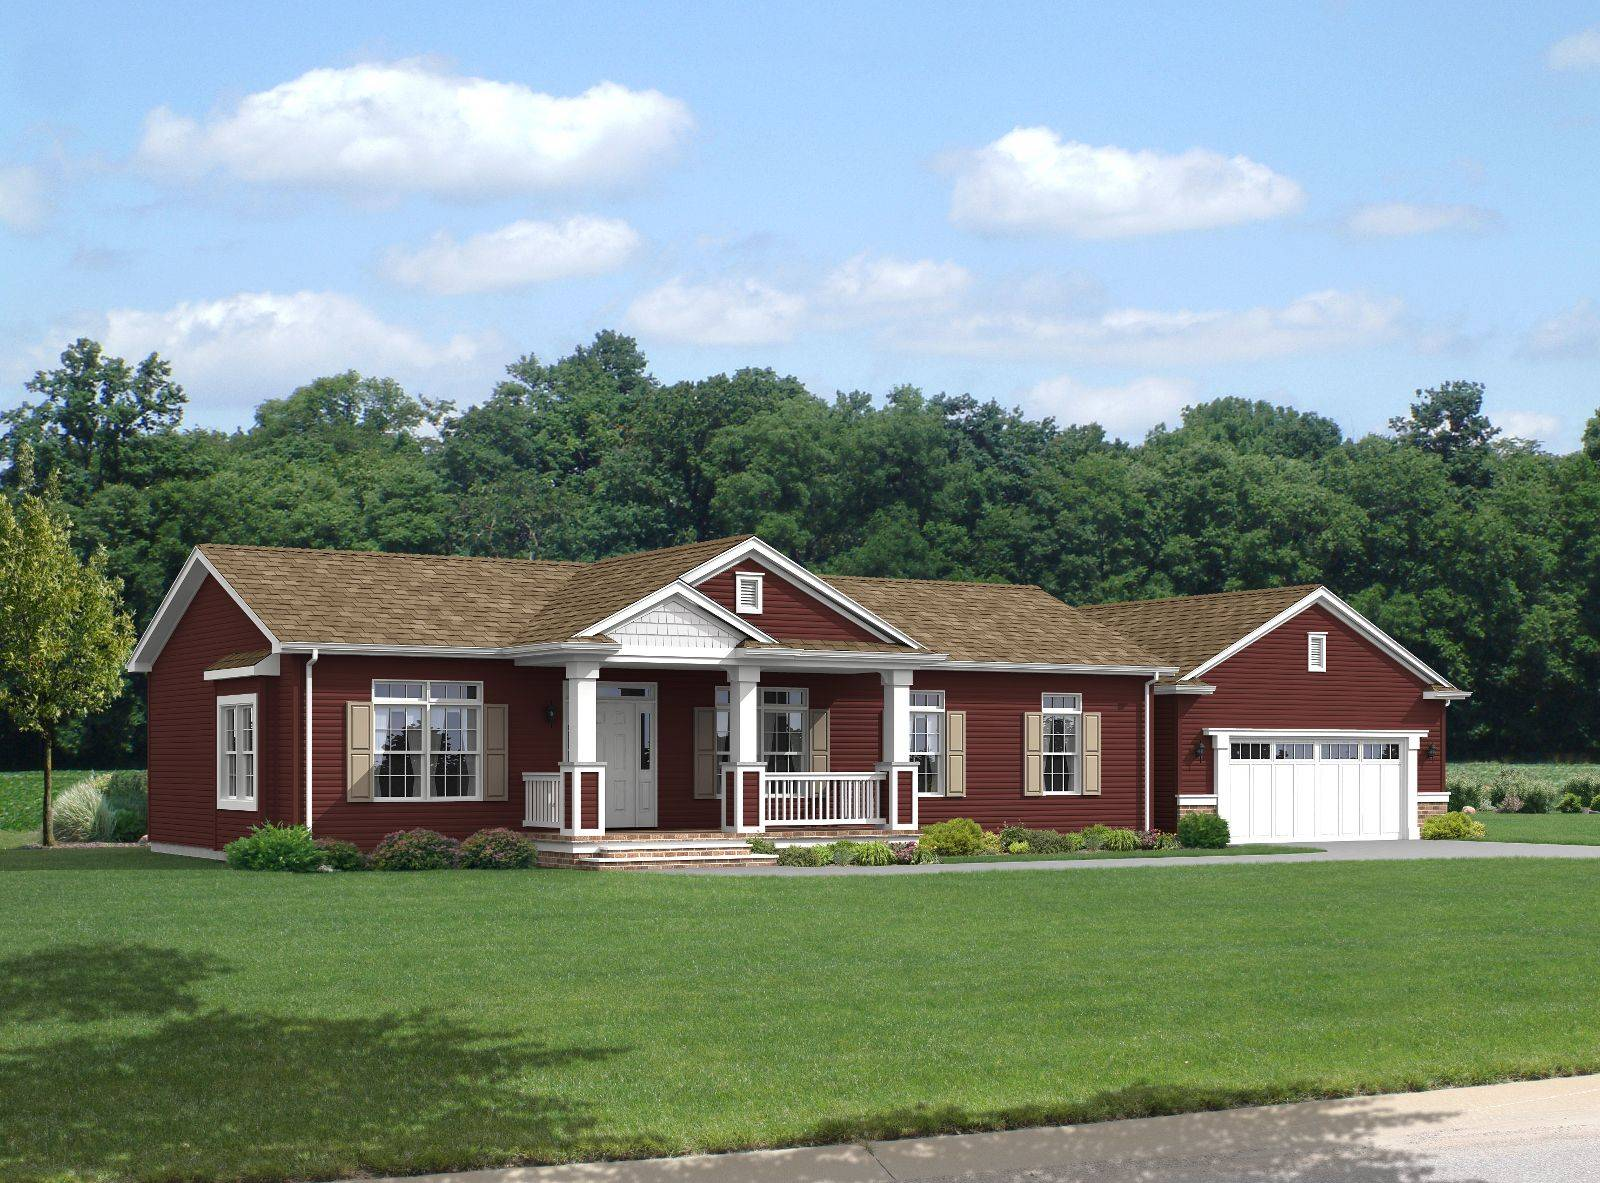 Pre Manufactured Home mobile homes near me. mobile. diy home plans database